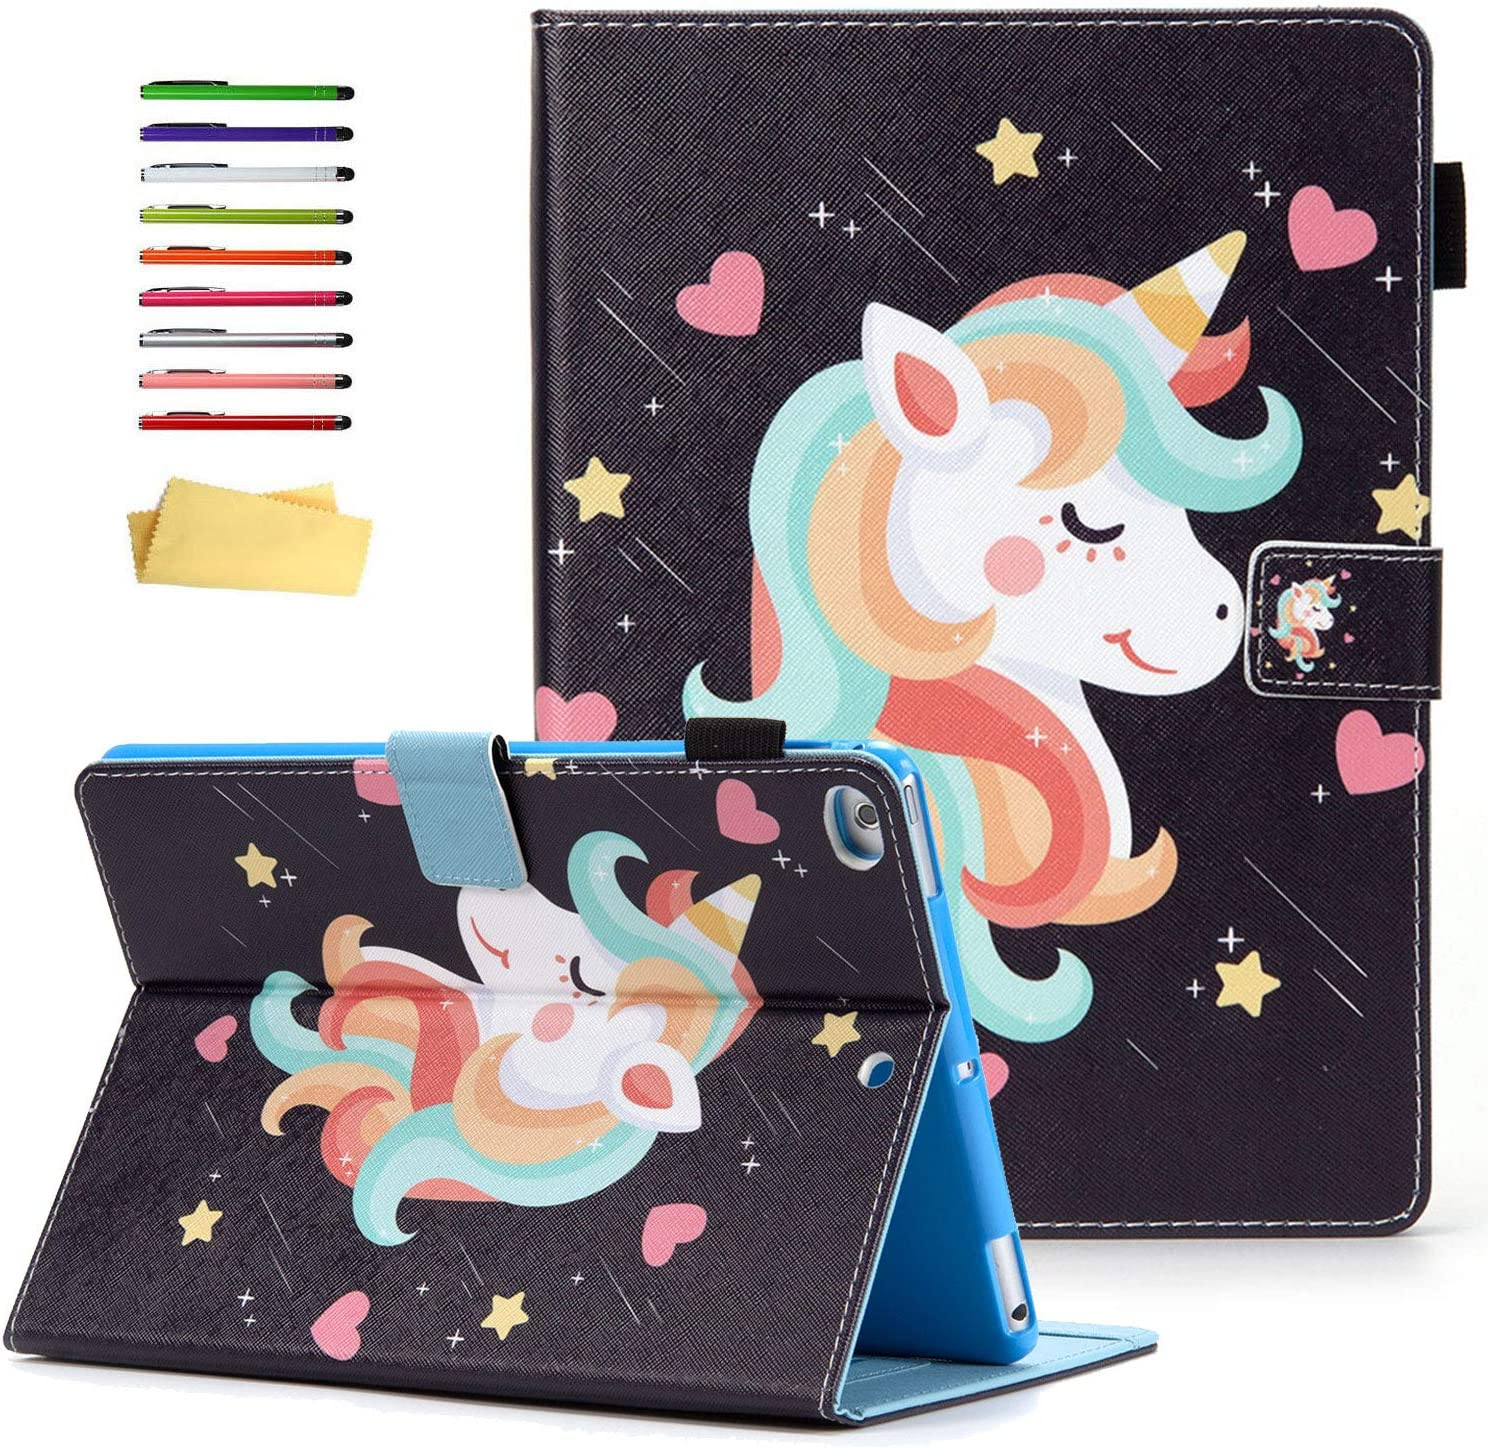 UUcovers iPad 9.7 inch 2018 2017 Case iPad 6th/5th Generation, iPad Air 1/Air 2 Cover with Pencil Holder Smart Folio Stand PU Leather TPU Magnetic Card Pocket Wallet [Auto Sleep/Wake], Unicorn Star